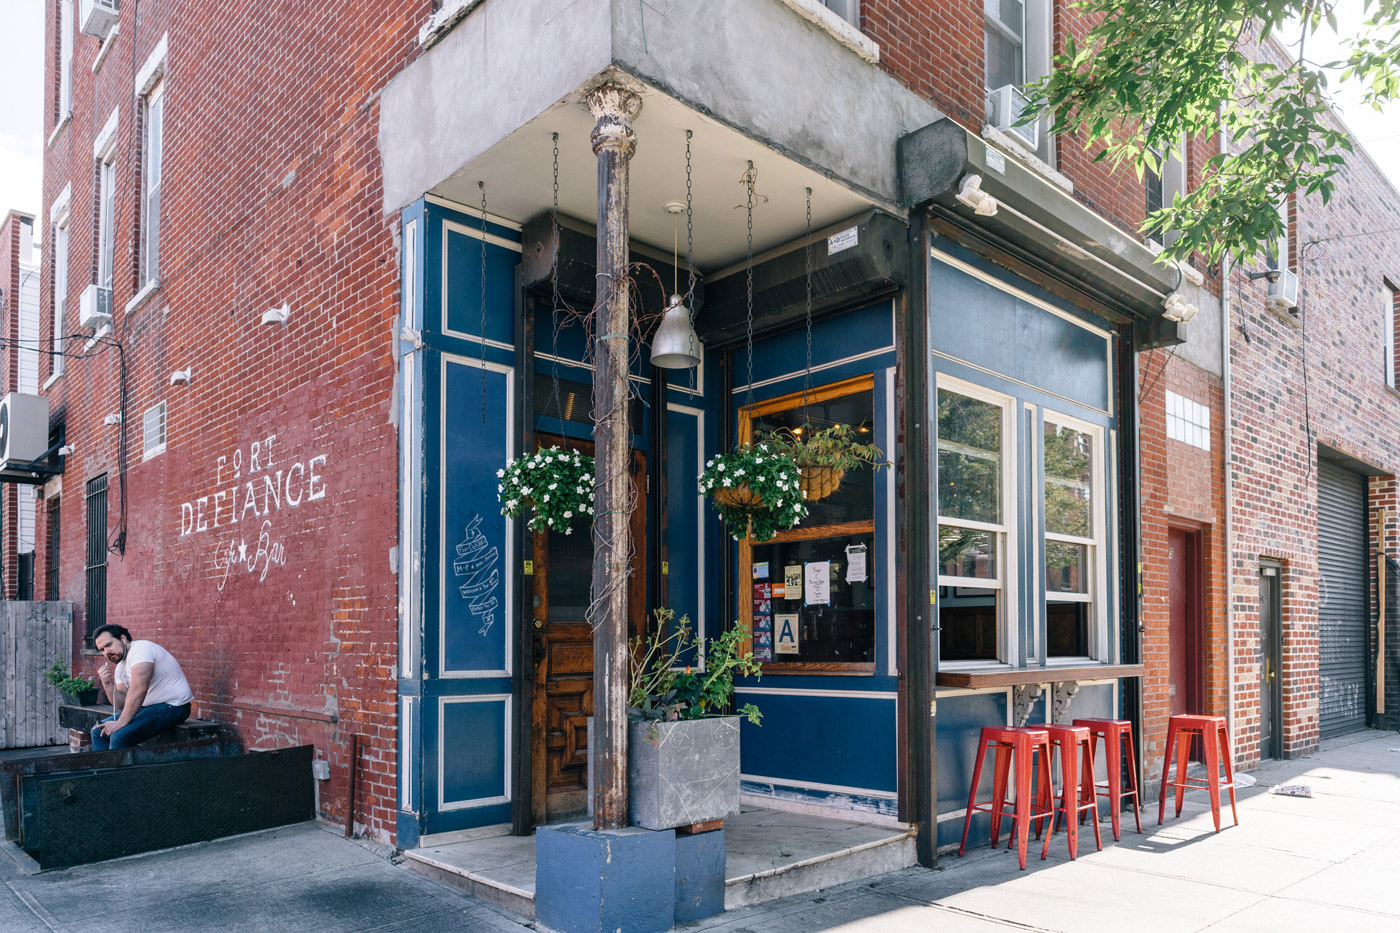 "Fort Defiance Café and Bar in Red Hook"" style="